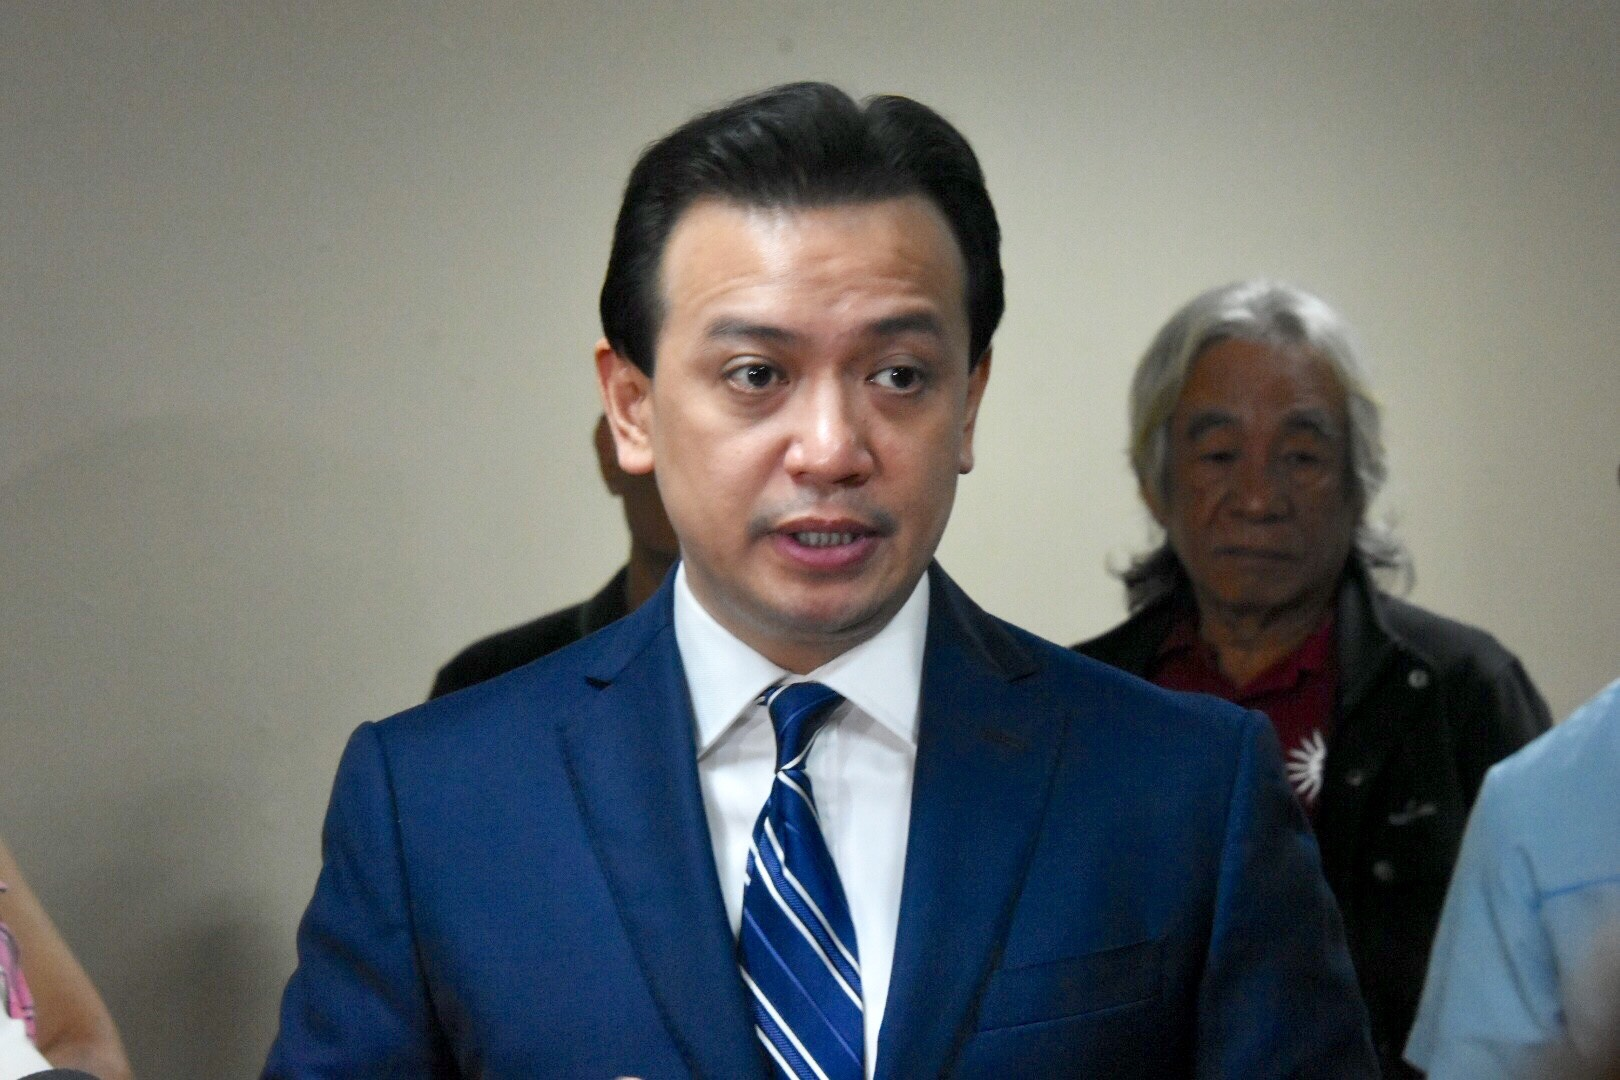 VISIT. An official from the US Embassy in Manila visits Senator Antonio Trillanes IV on Wednesday, September 19. Photo by Angie de Silva/Rappler